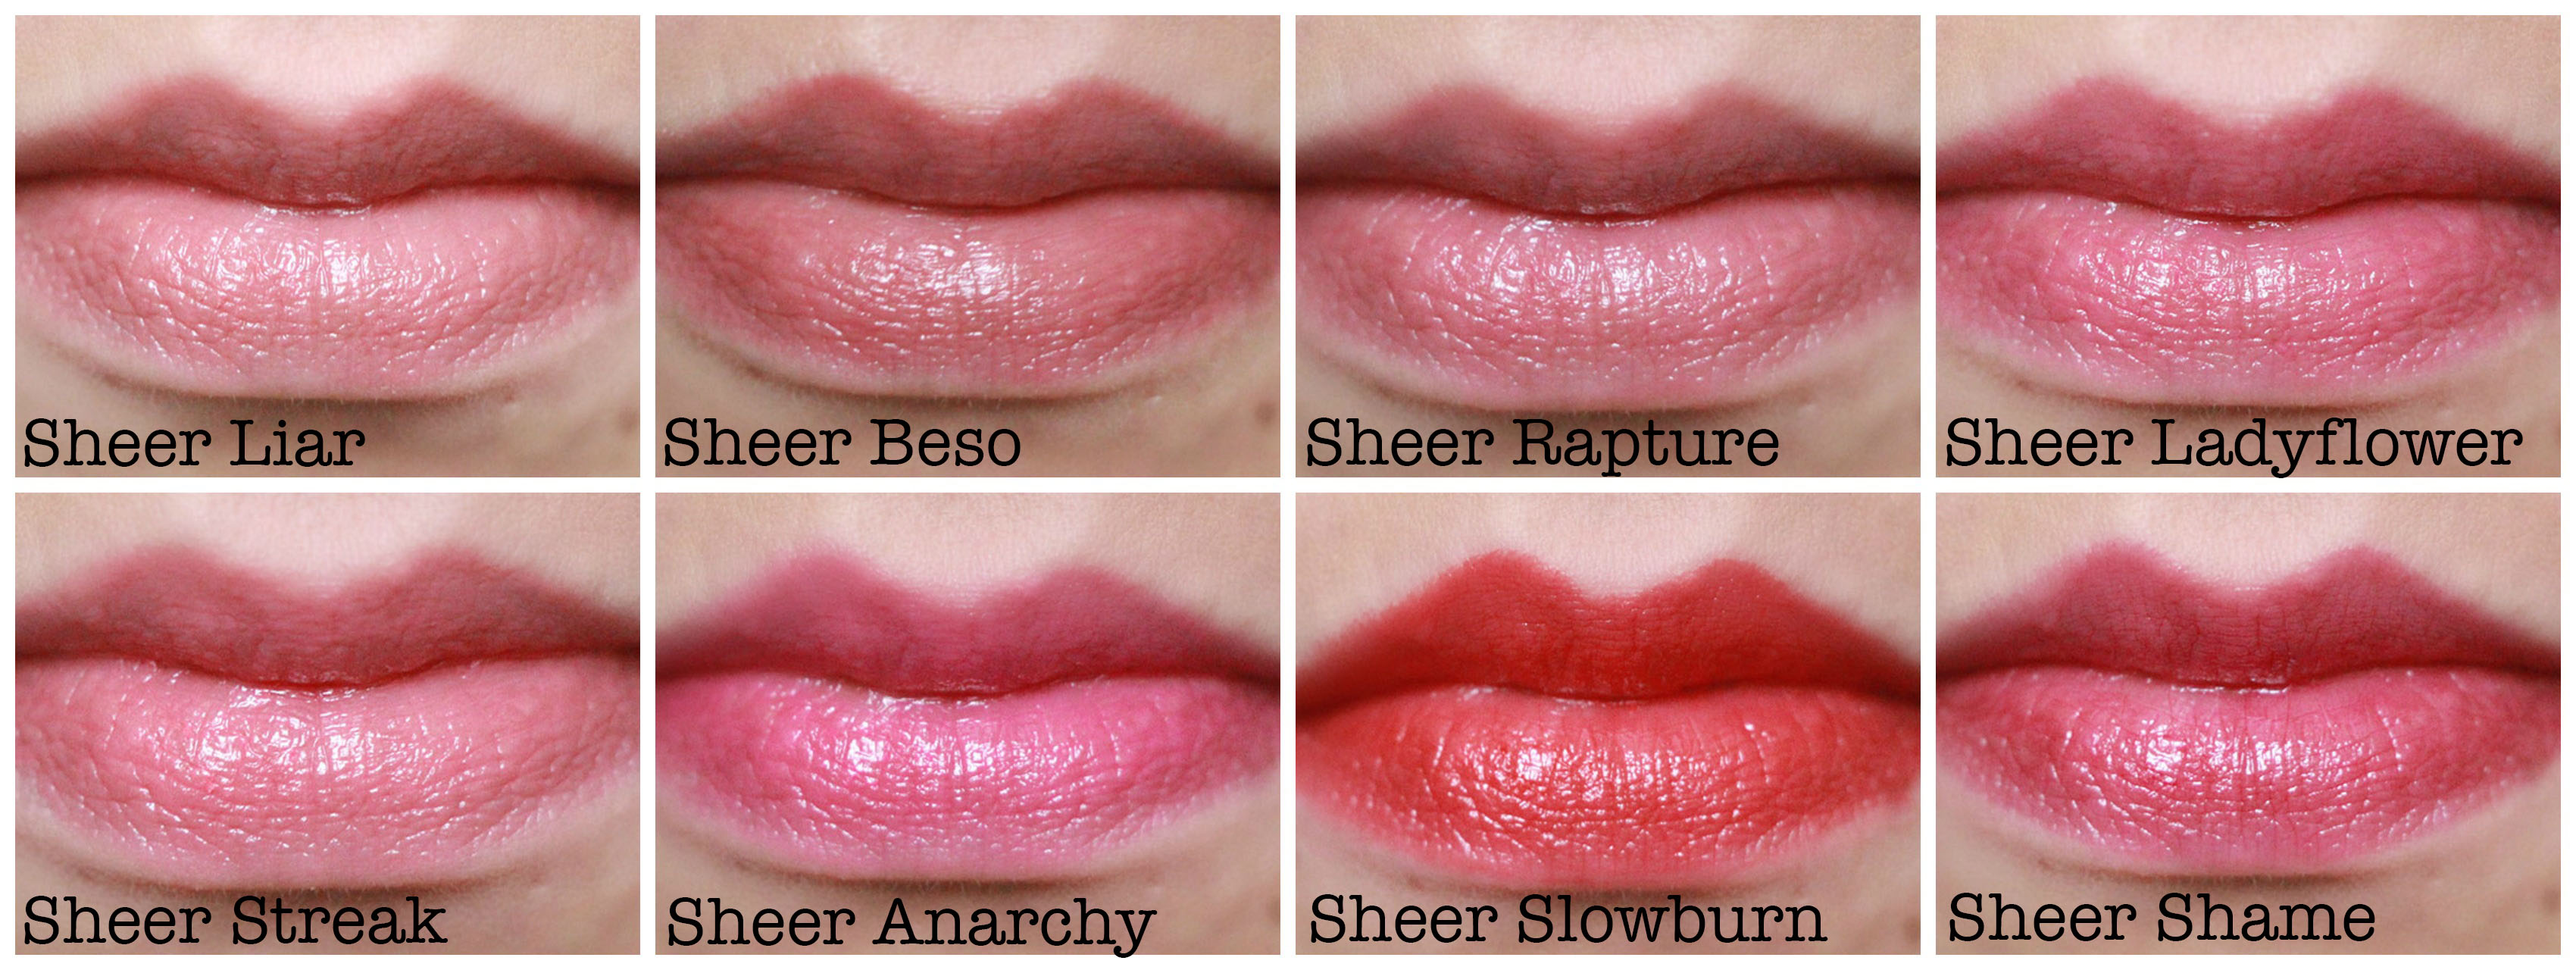 Urban Decay Revolution Lipstick in Liar reviews - Makeupalley